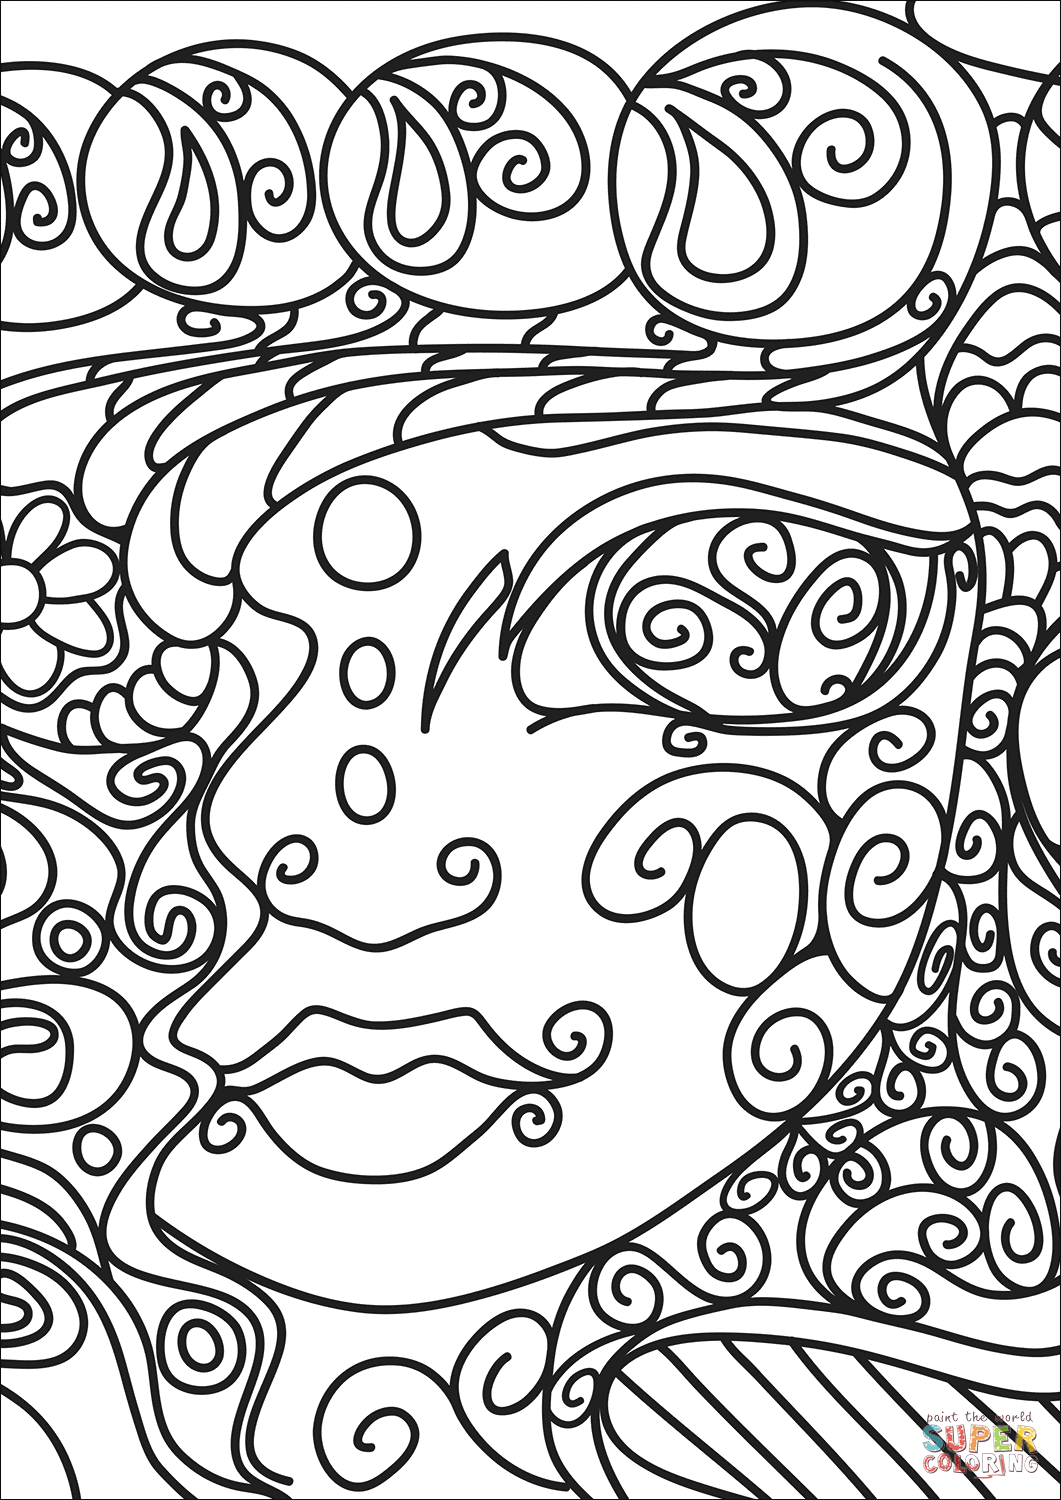 doodle art printables abstract doodle coloring page free printable coloring pages printables art doodle